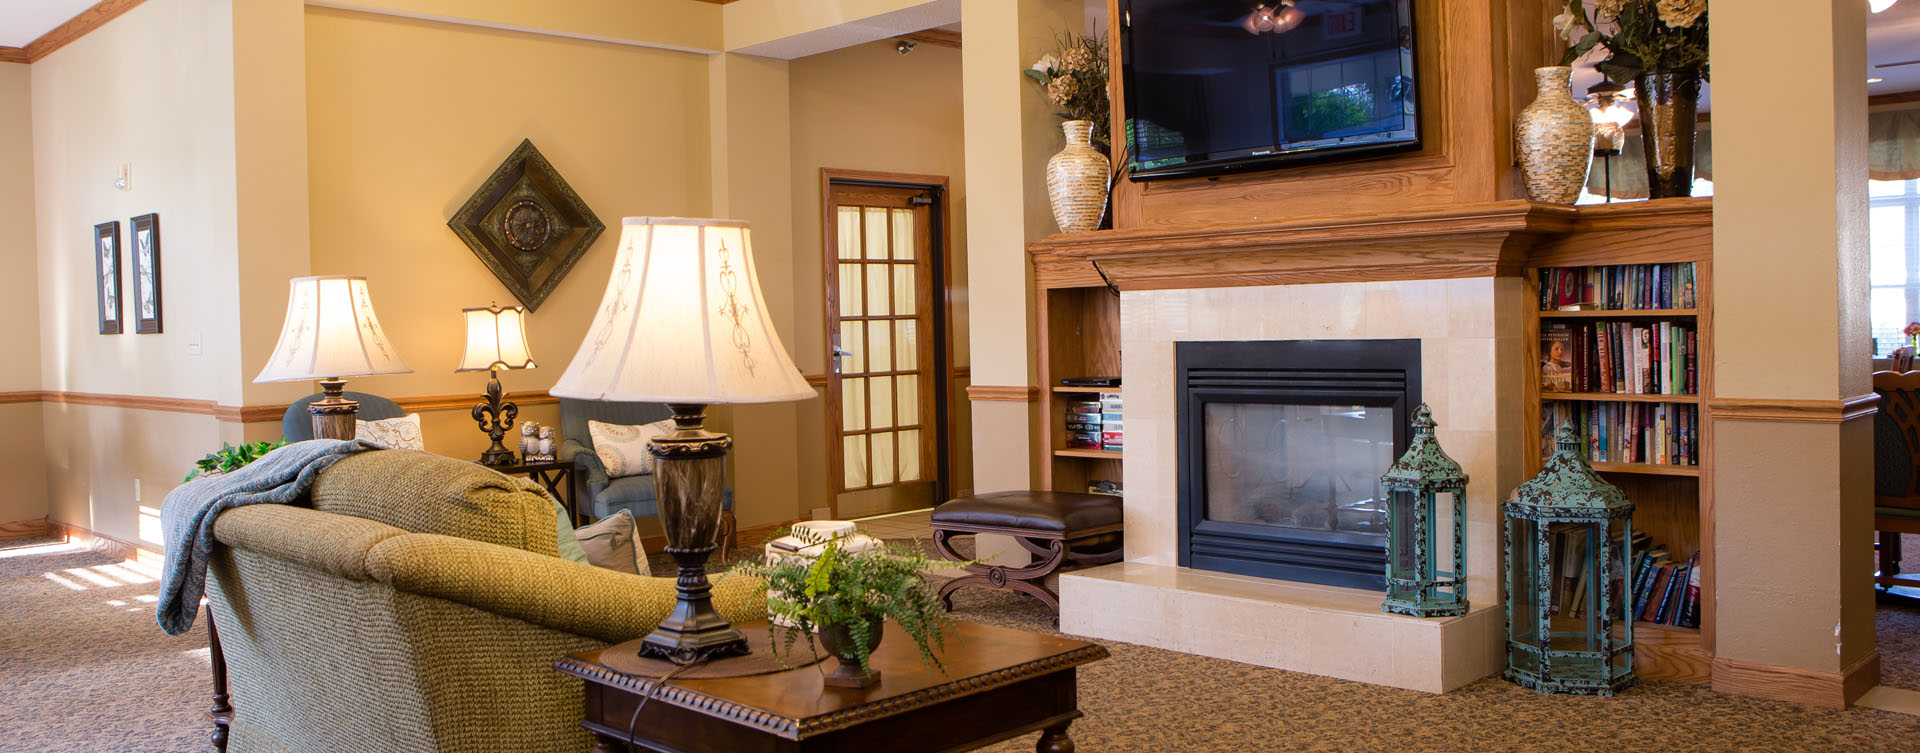 Enjoy a good book in the living room at Bickford of Macomb